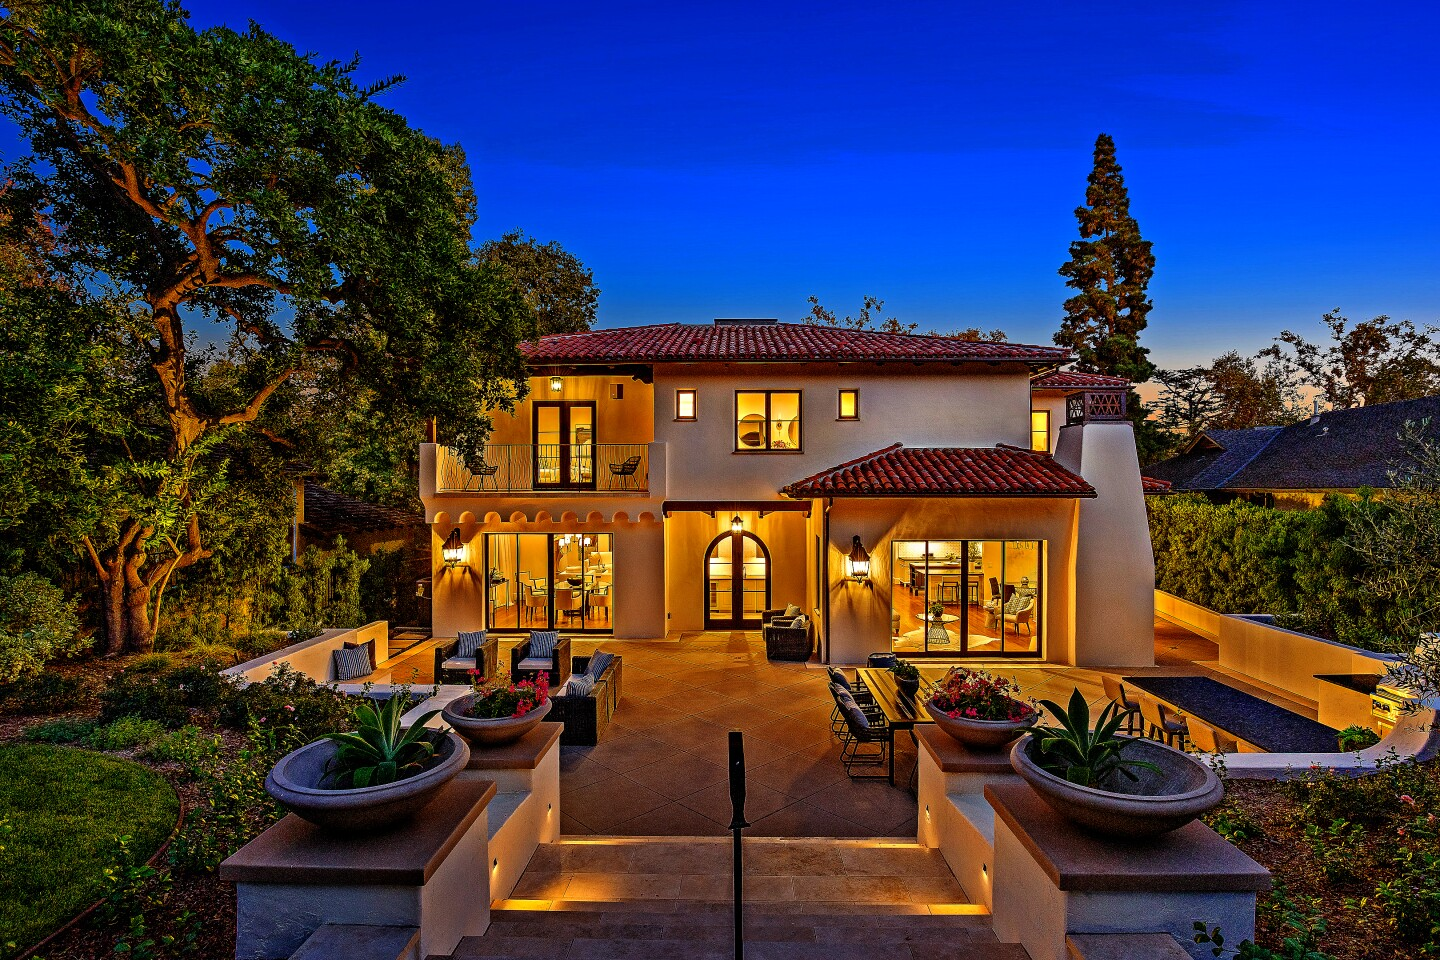 Film actor Shia LaBeouf paid $5.475 million for a newly built home near the Huntington Library in Pasadena. Designed in Mediterranean Revival style, the thee-story residence has about 4,100 square feet of space, four bedrooms and an elevator. The house sits on about a third of an acre with an outdoor kitchen and patio space.